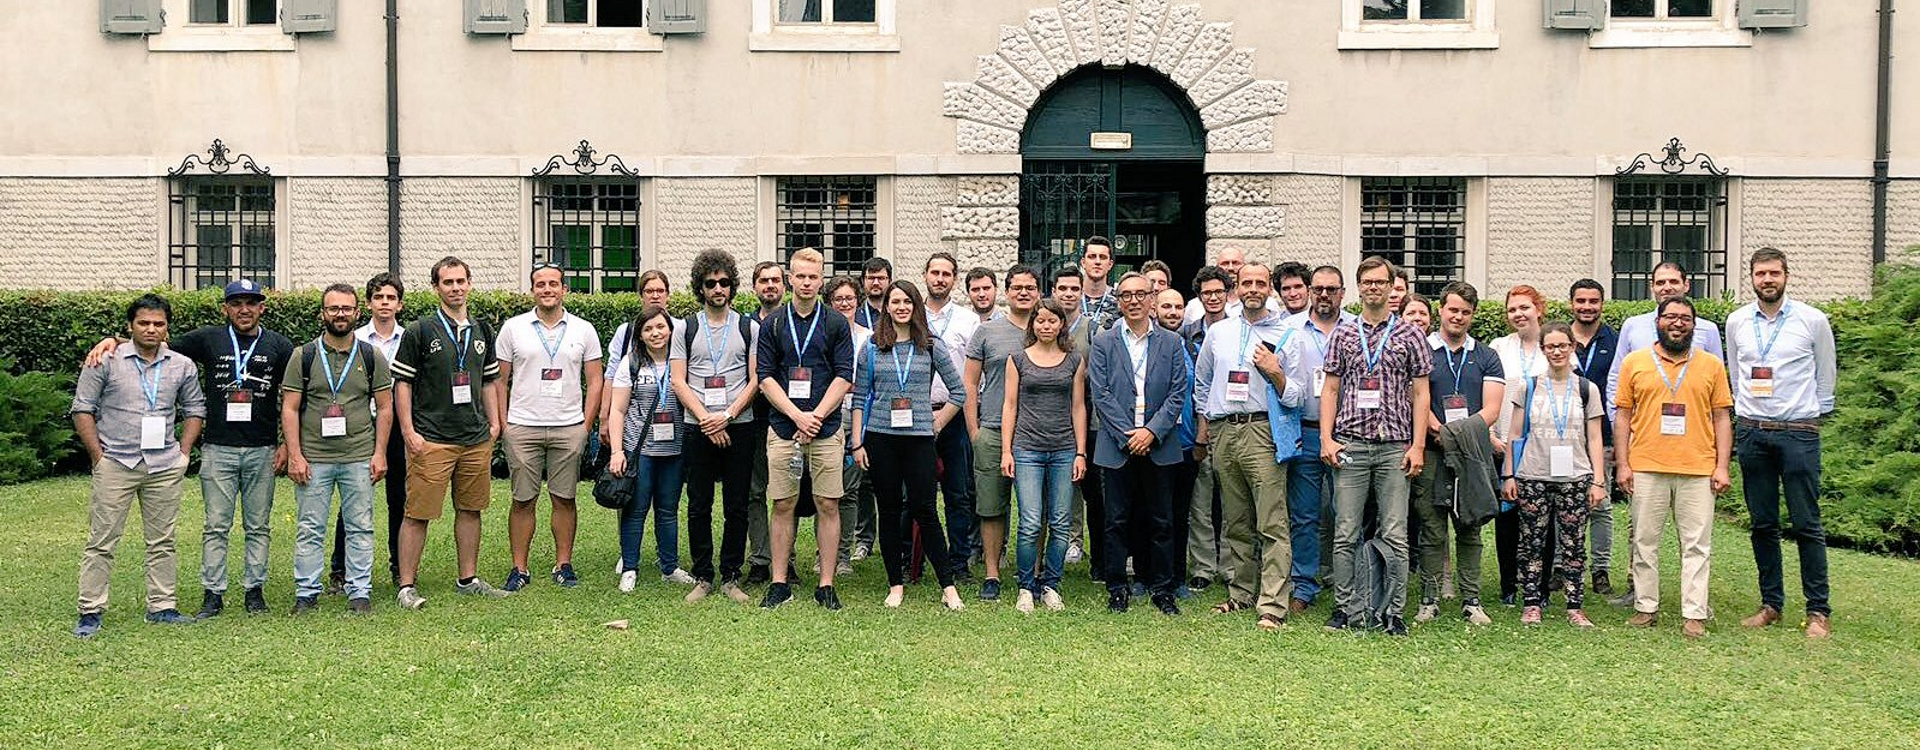 Un successo l'International Summer School on Artificial Intelligence